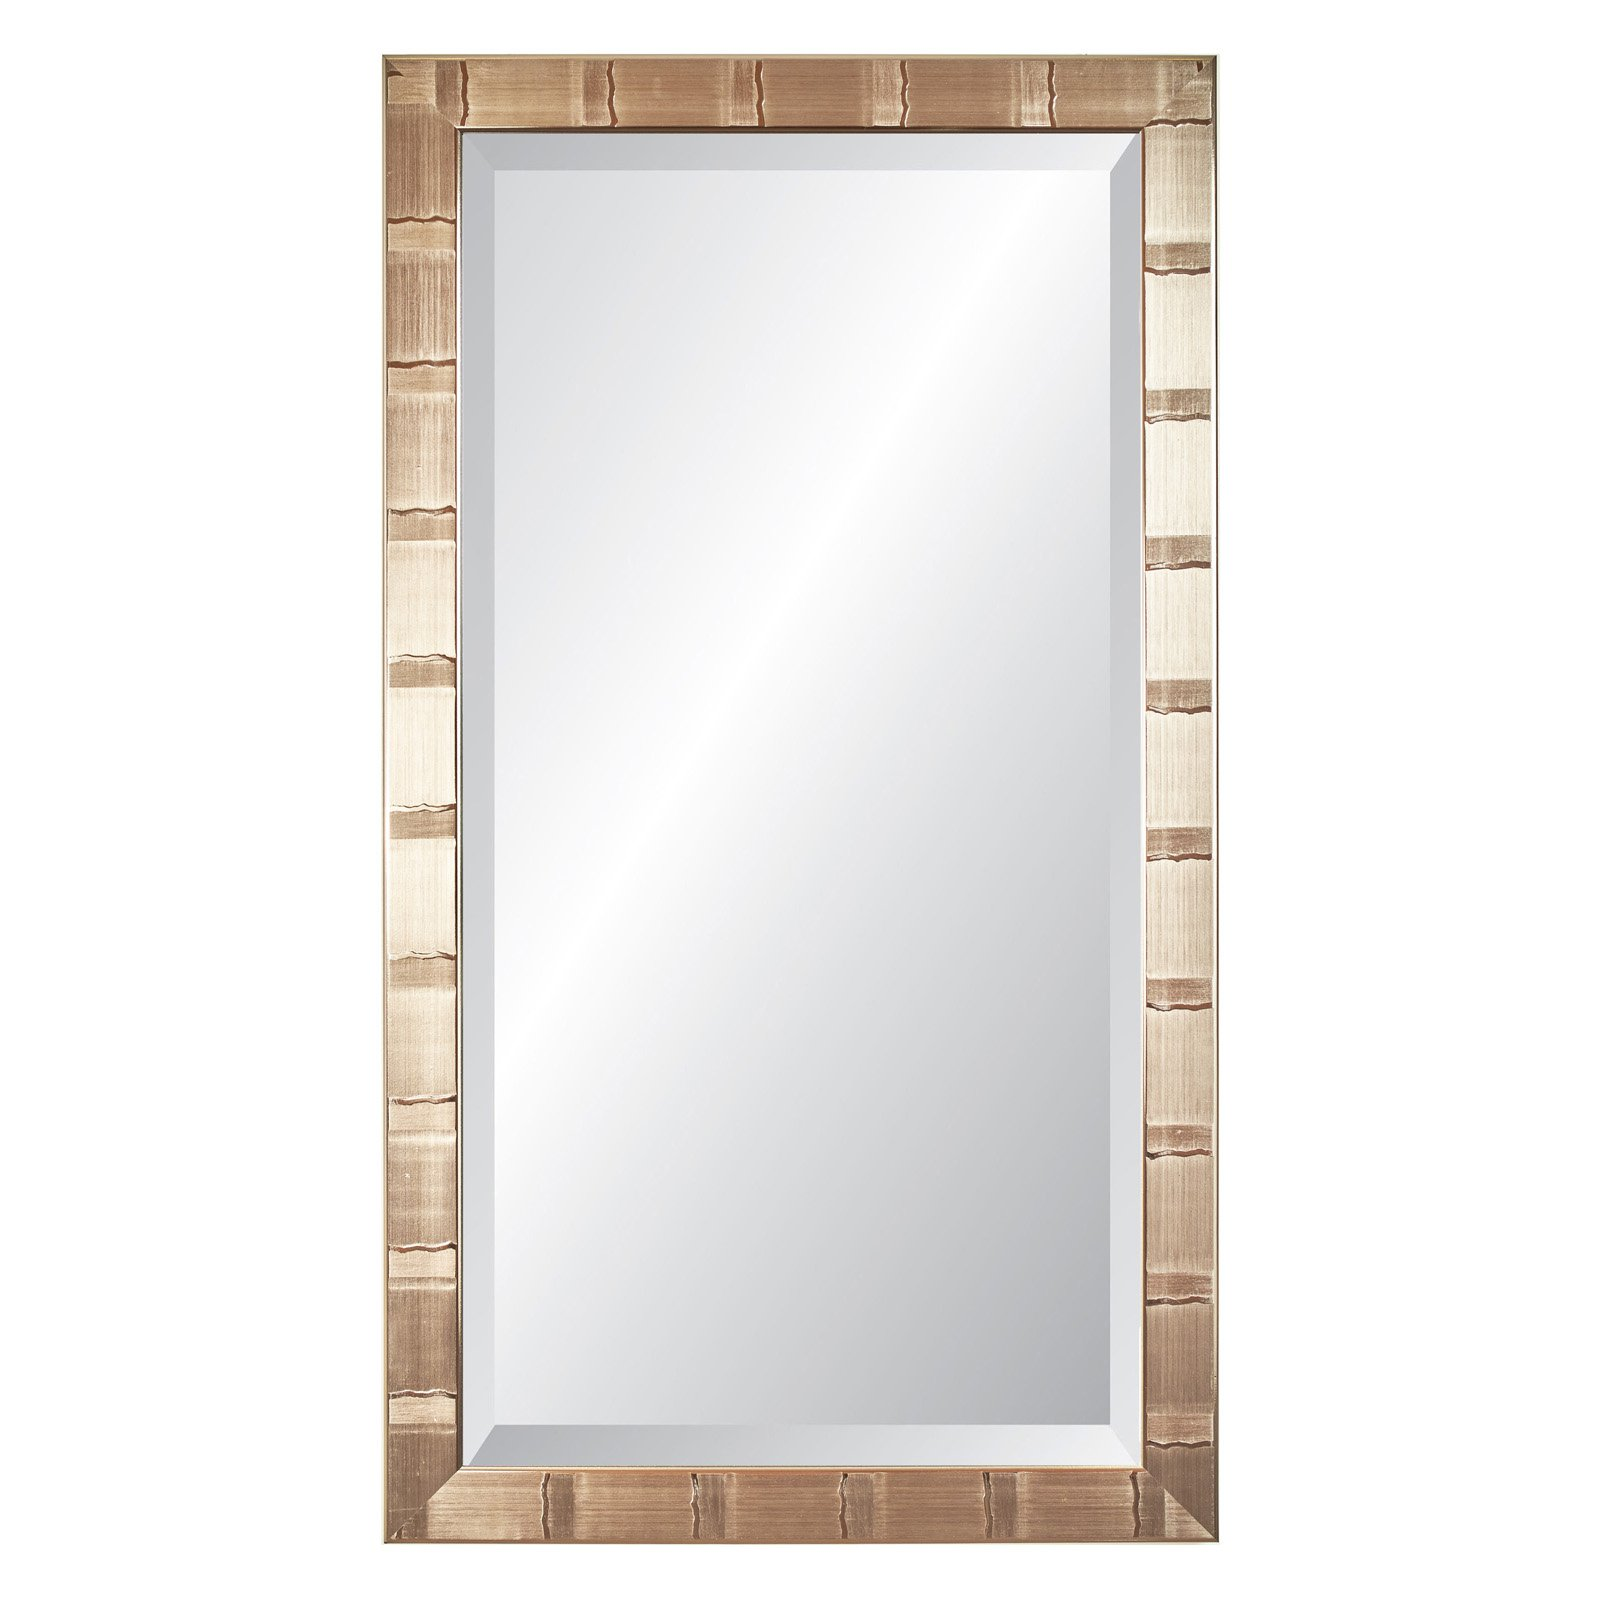 "Christopher Collection Silver Lined and Accented Wall Mirror, 29"" x 41"" by Alpine Art and Mirror"